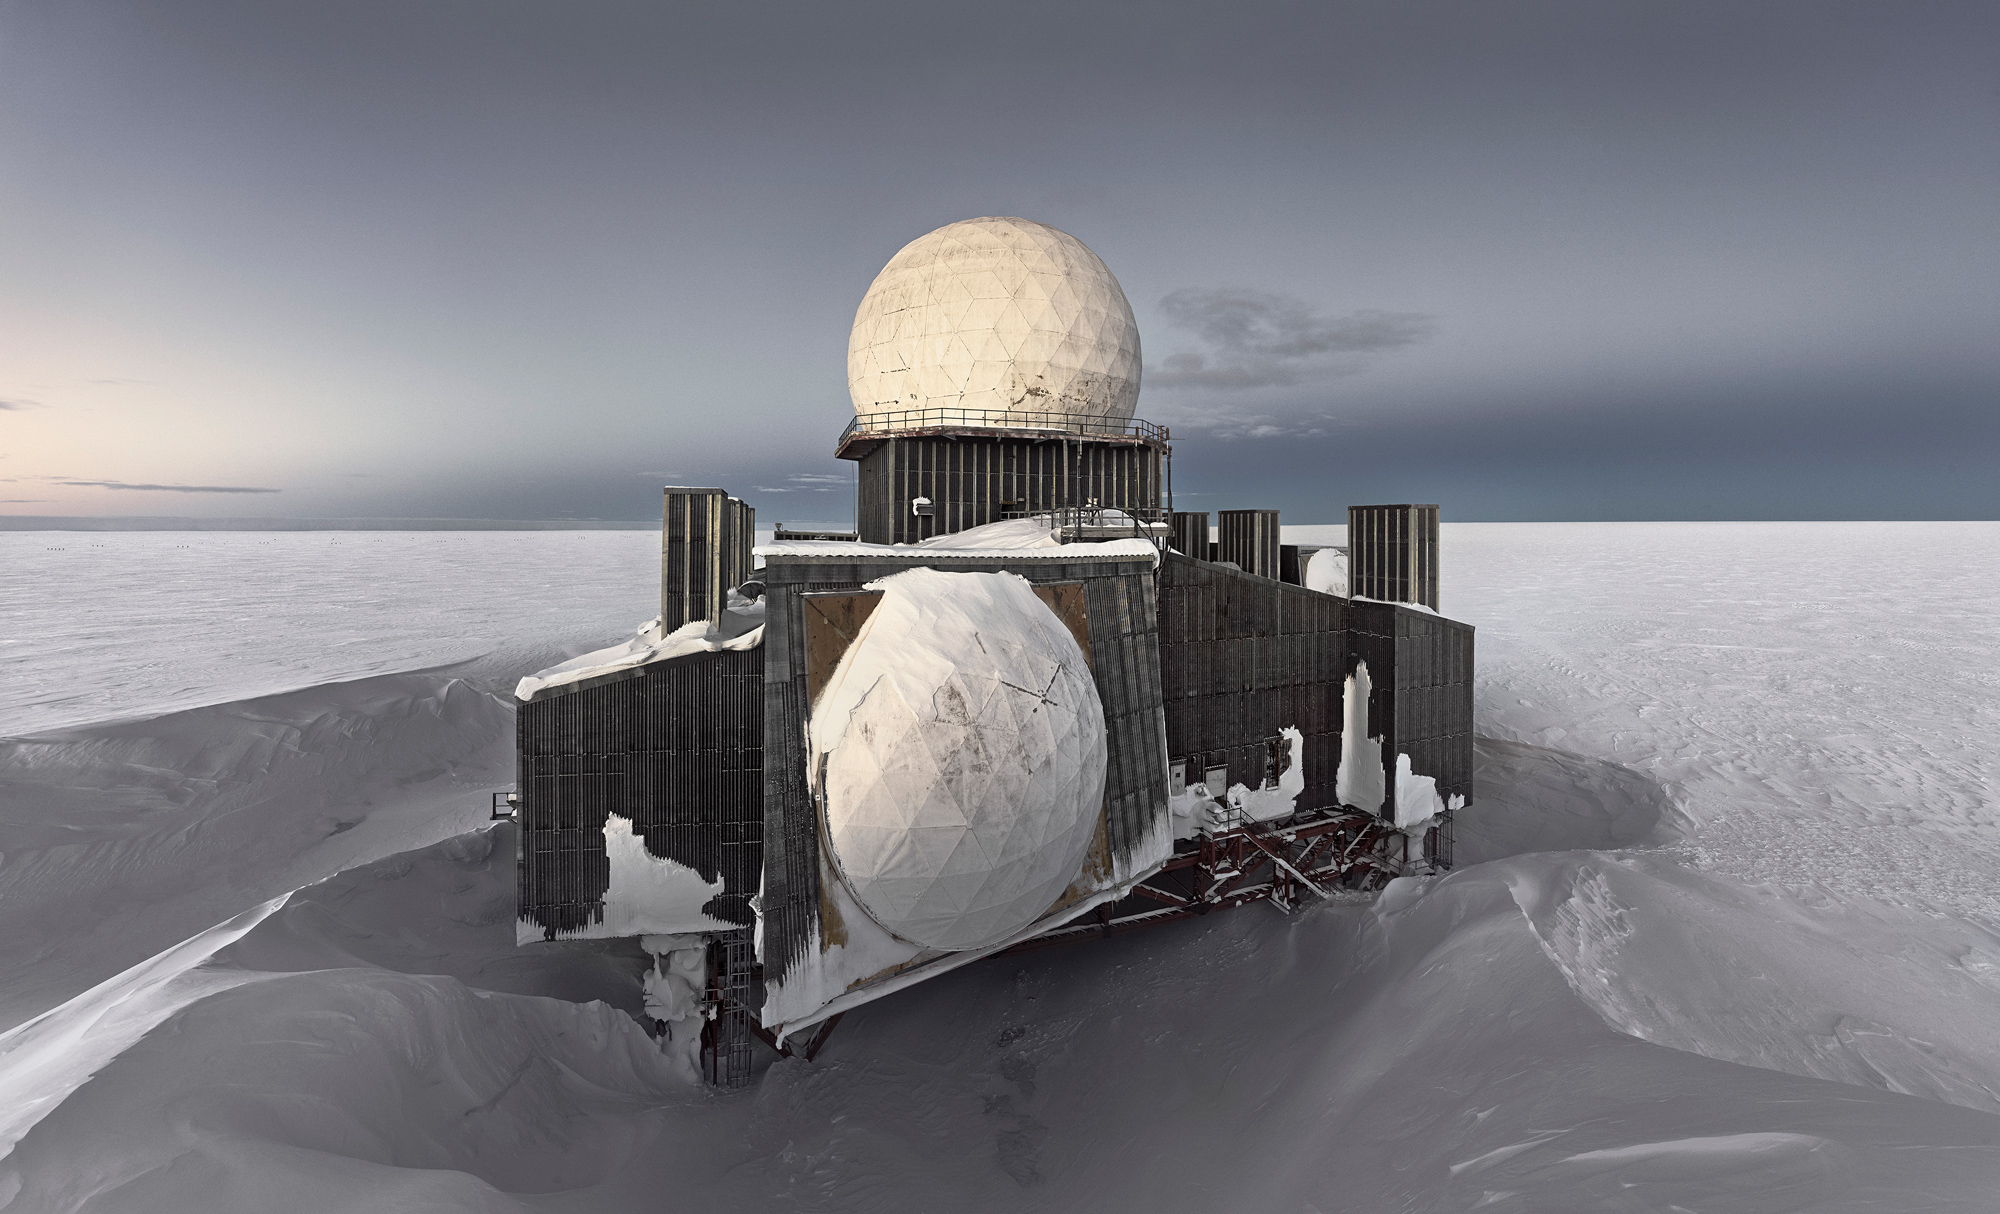 DYE2 #1, Abandoned Missile Detection Station, Greenland Icesheet. 100cm x 165cm, Digital Pigment Print. Edition of 7. 2013